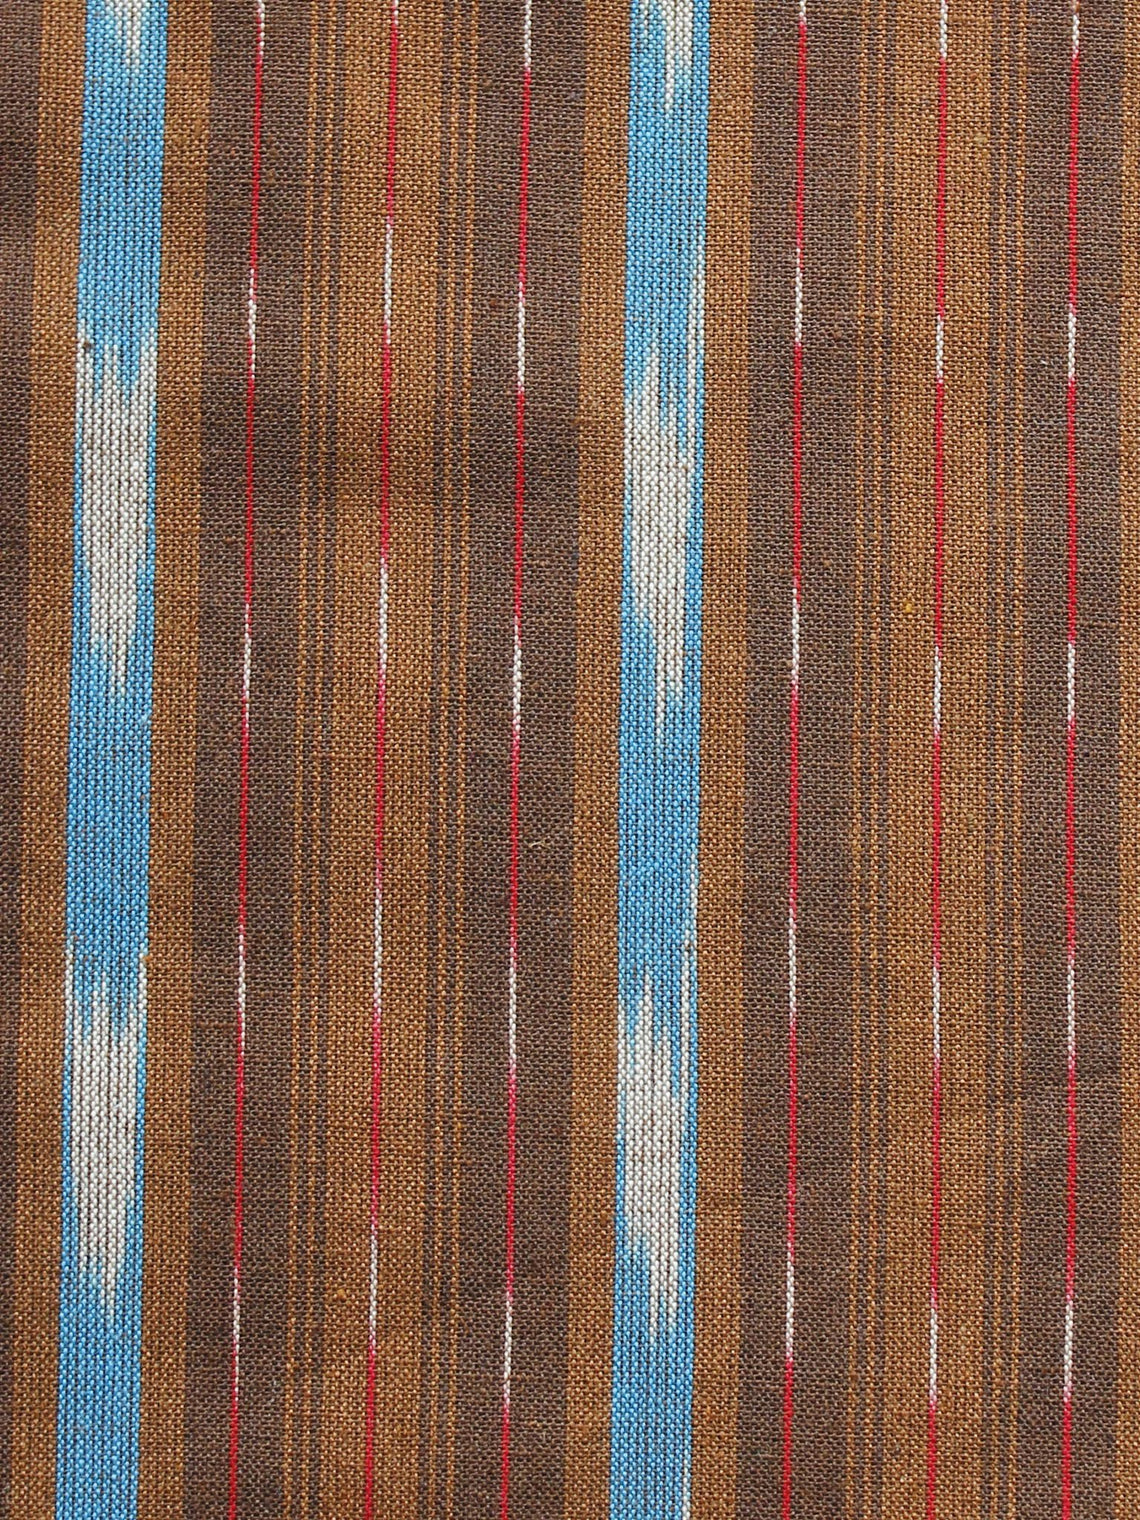 Brown Blue Ivory Pochampally Hand Woven Ikat Fabric Per Meter - F002F921